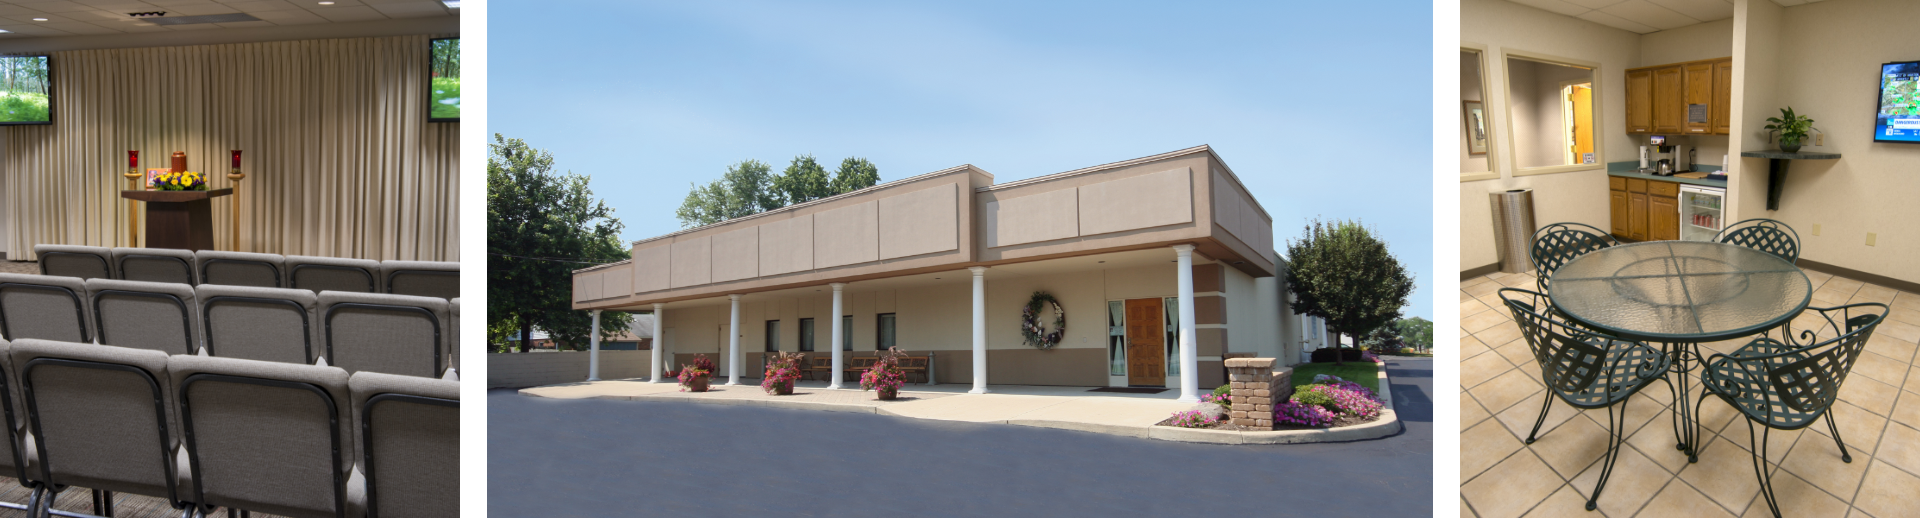 Funeral-Home-Kettering-OH